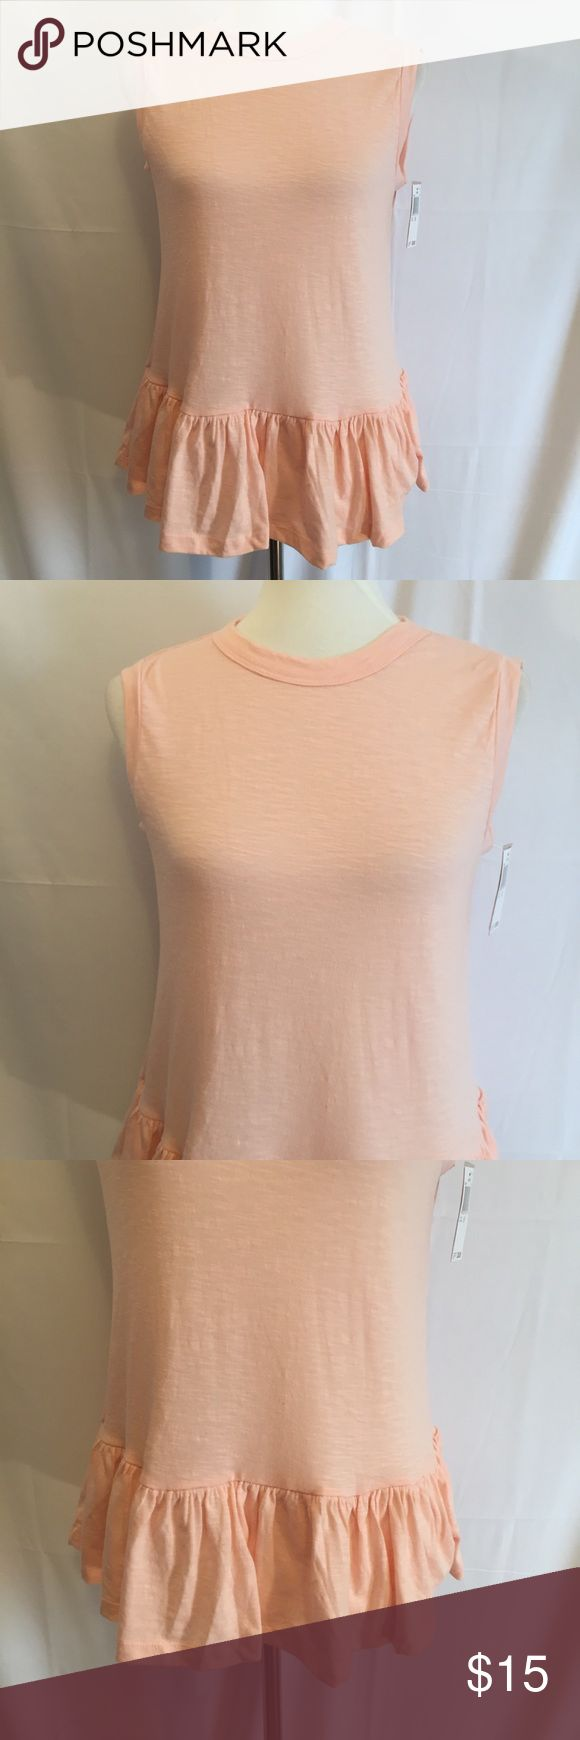 "Peach Hi Neck Sleeveless Top - Ruffle Bottom, Sz M Very trendy and cute. Great to wear with jeans, capris or dress up with a skirt.  - Crew Band Neckline - Banded Sleeveless - Ruffled Hem - Approximate Length:  26"" - Fabric:  51% Polyester, 49% Cotton  - Size:  Medium Philosophy Tops Tank Tops"